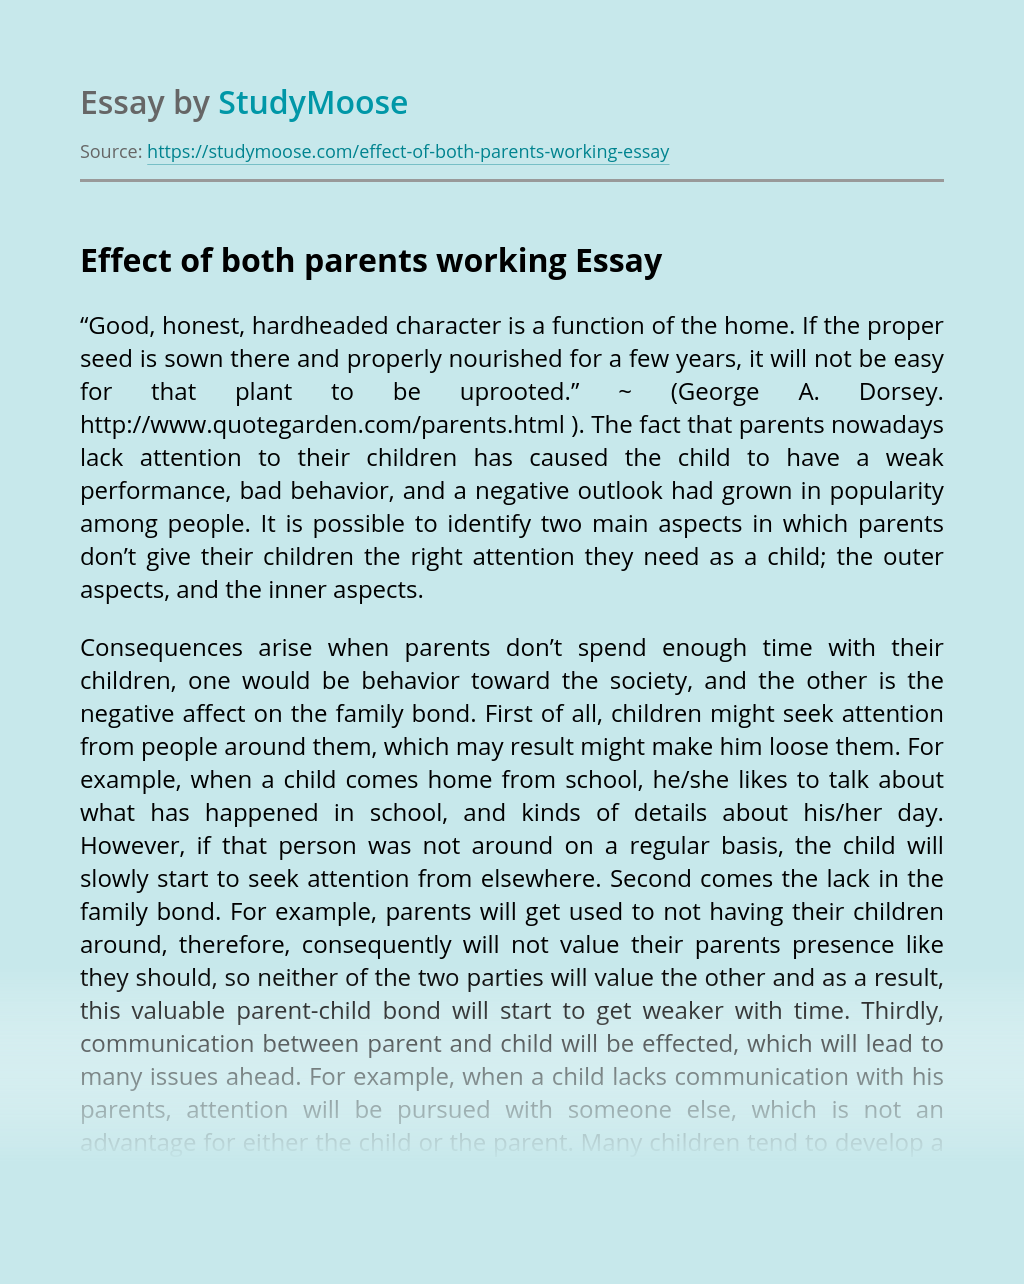 Effect of both parents working